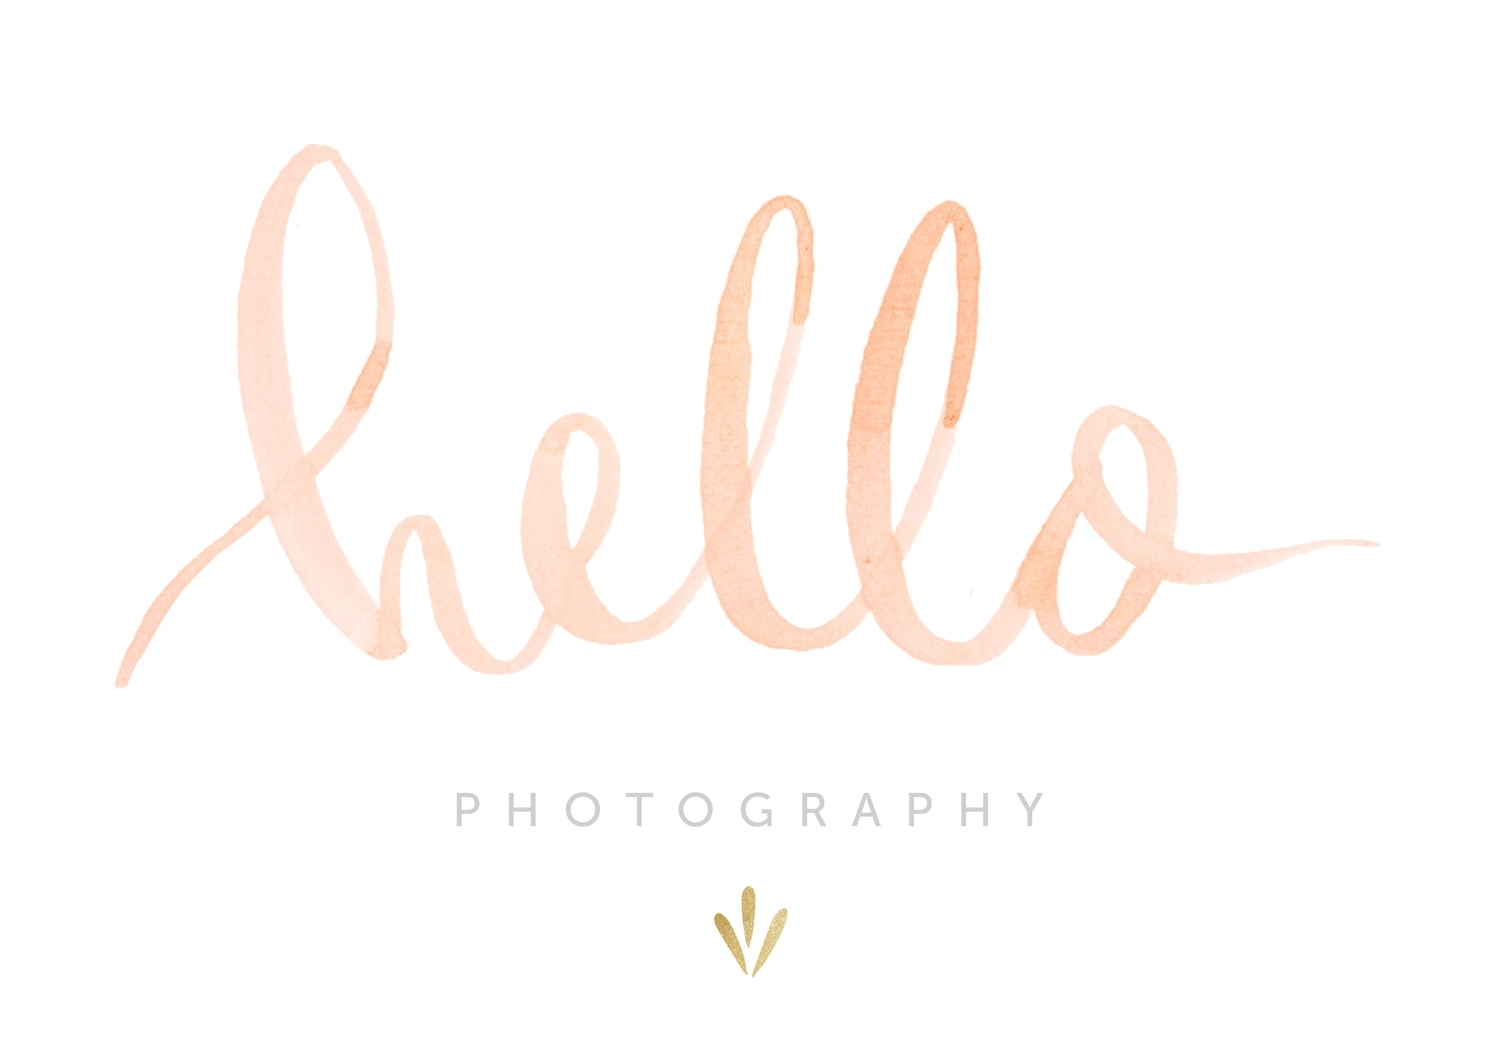 hello photography